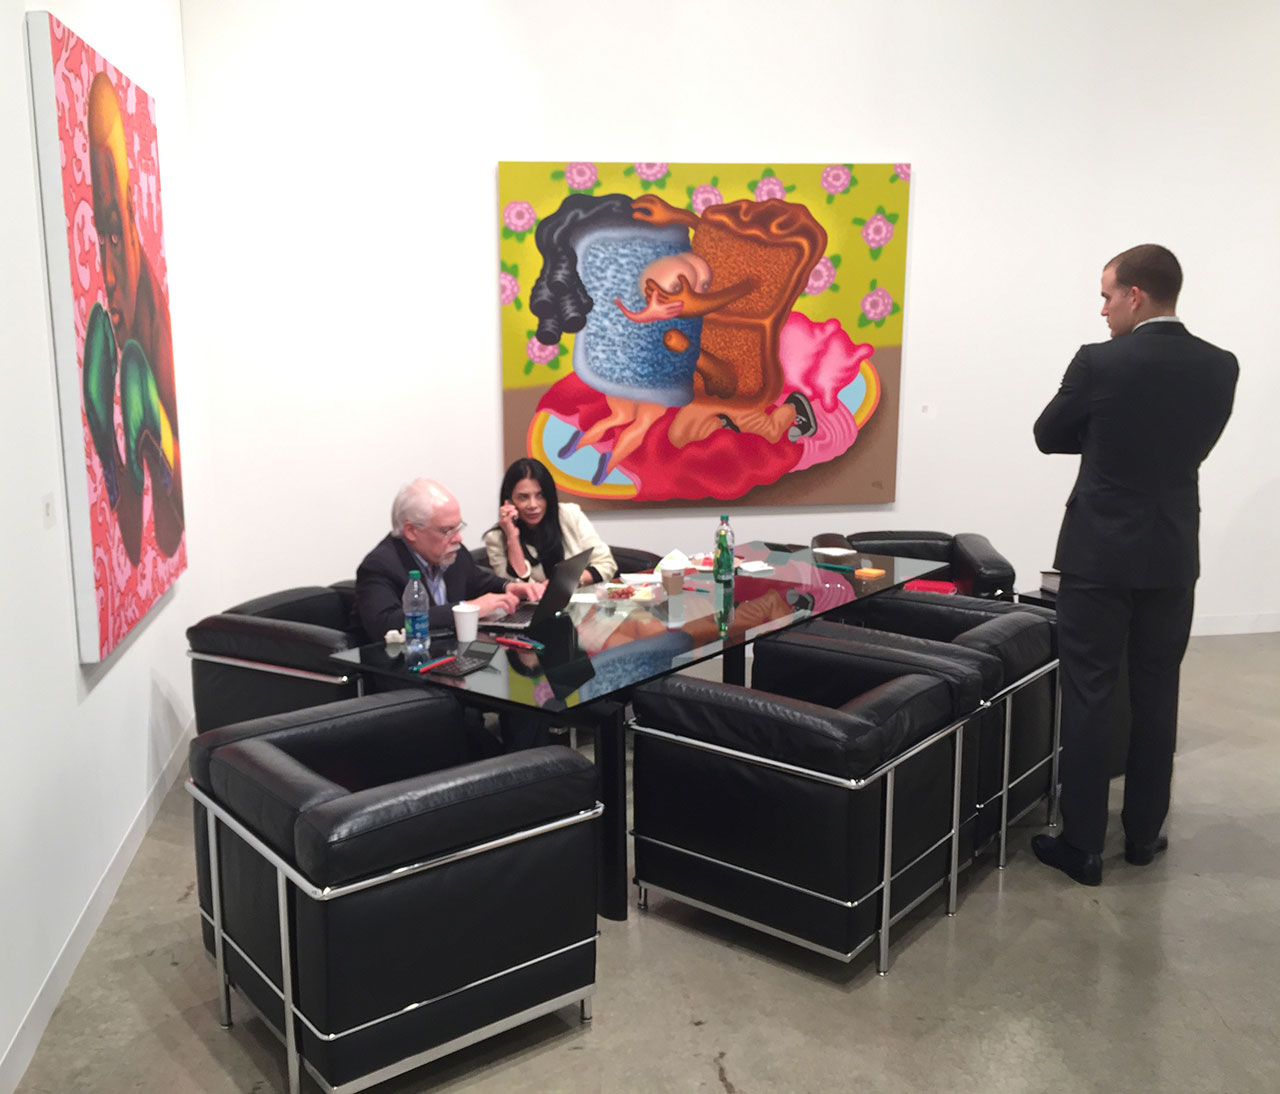 At Mary Boone gallery of New York